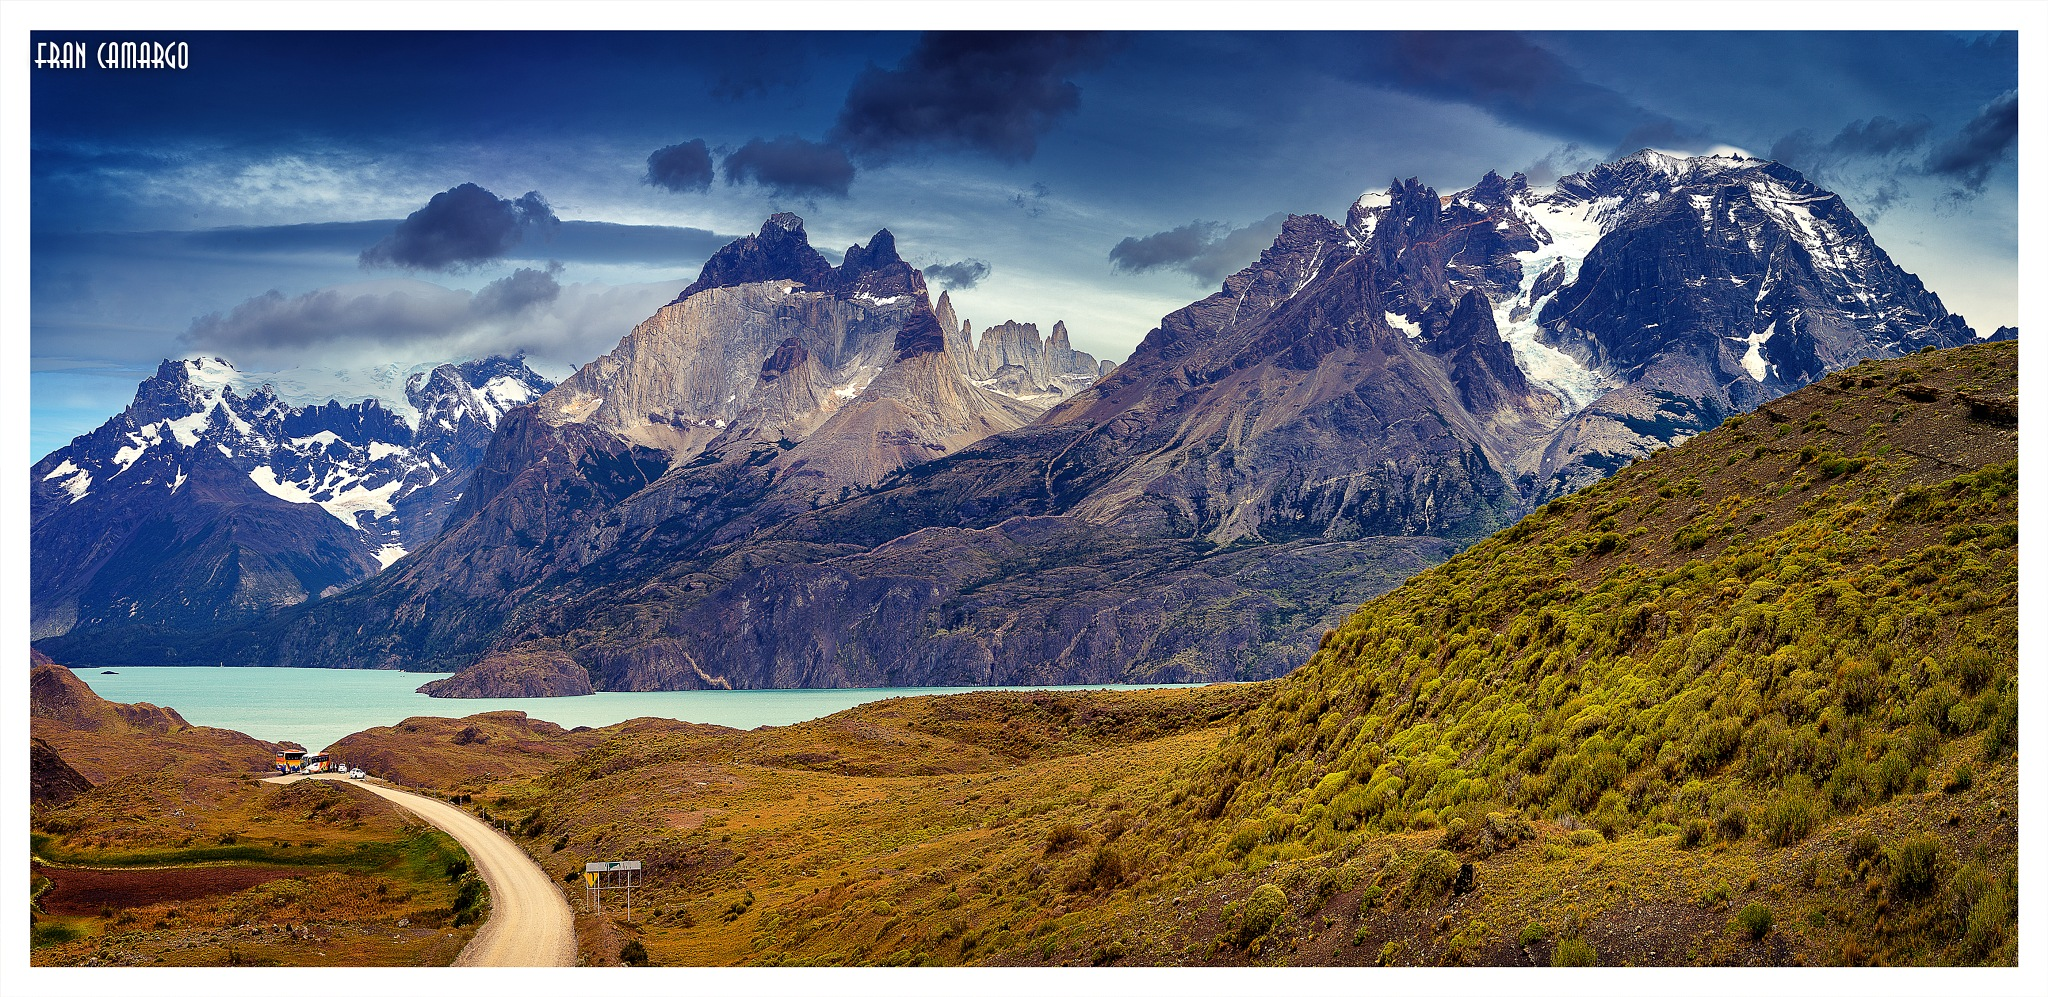 Torres Del Paine - Chile by Fran Camargo